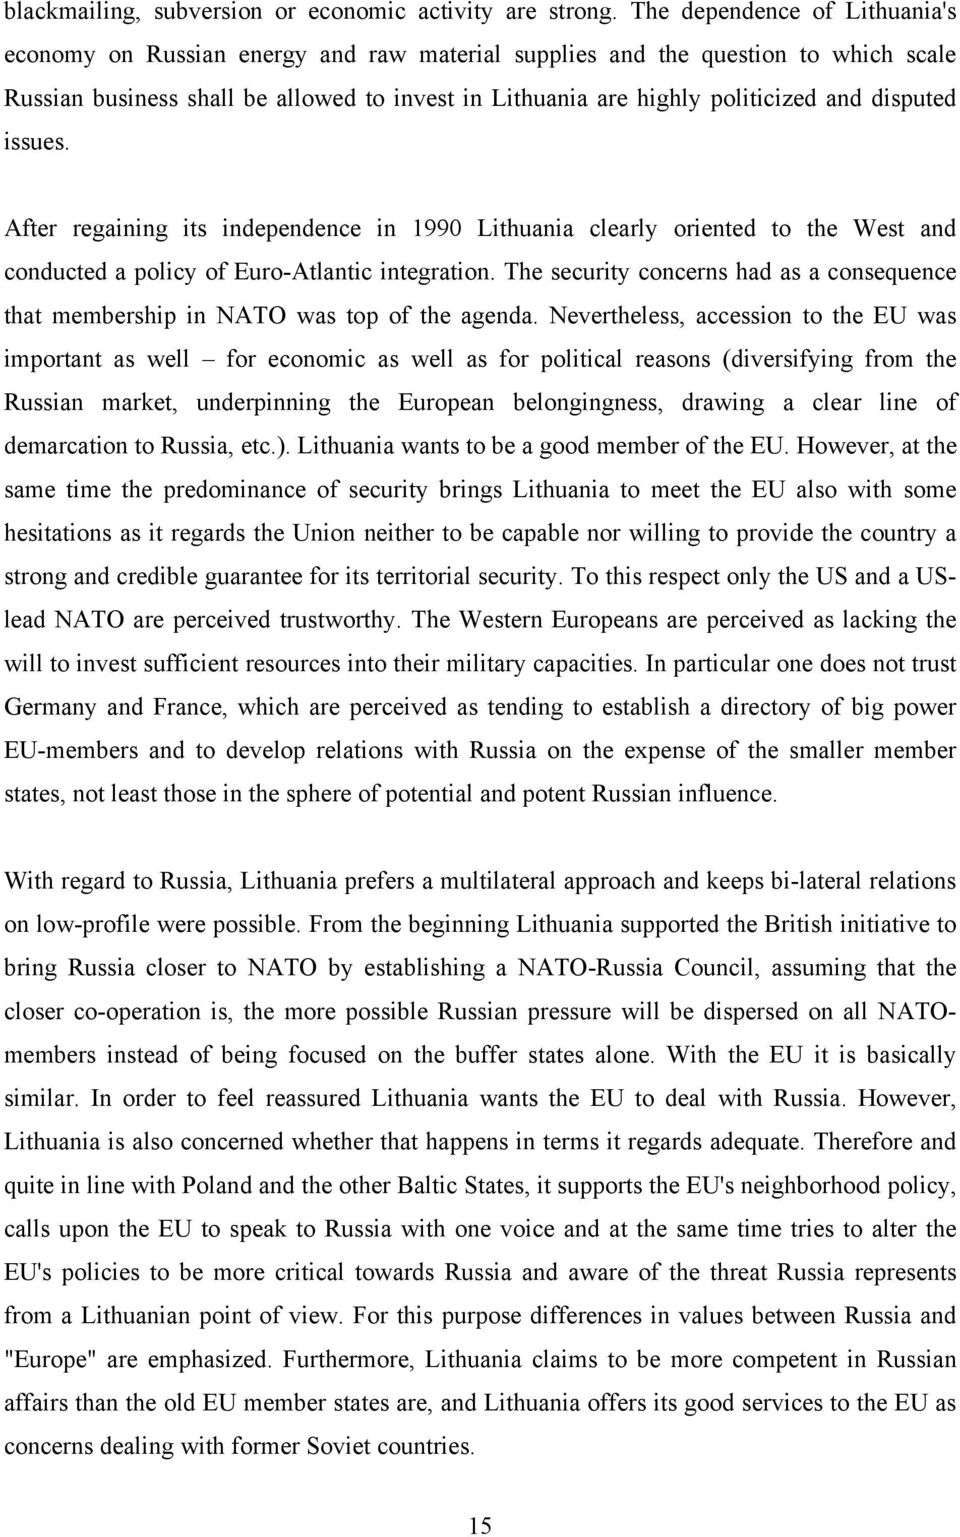 disputed issues. After regaining its independence in 1990 Lithuania clearly oriented to the West and conducted a policy of Euro-Atlantic integration.